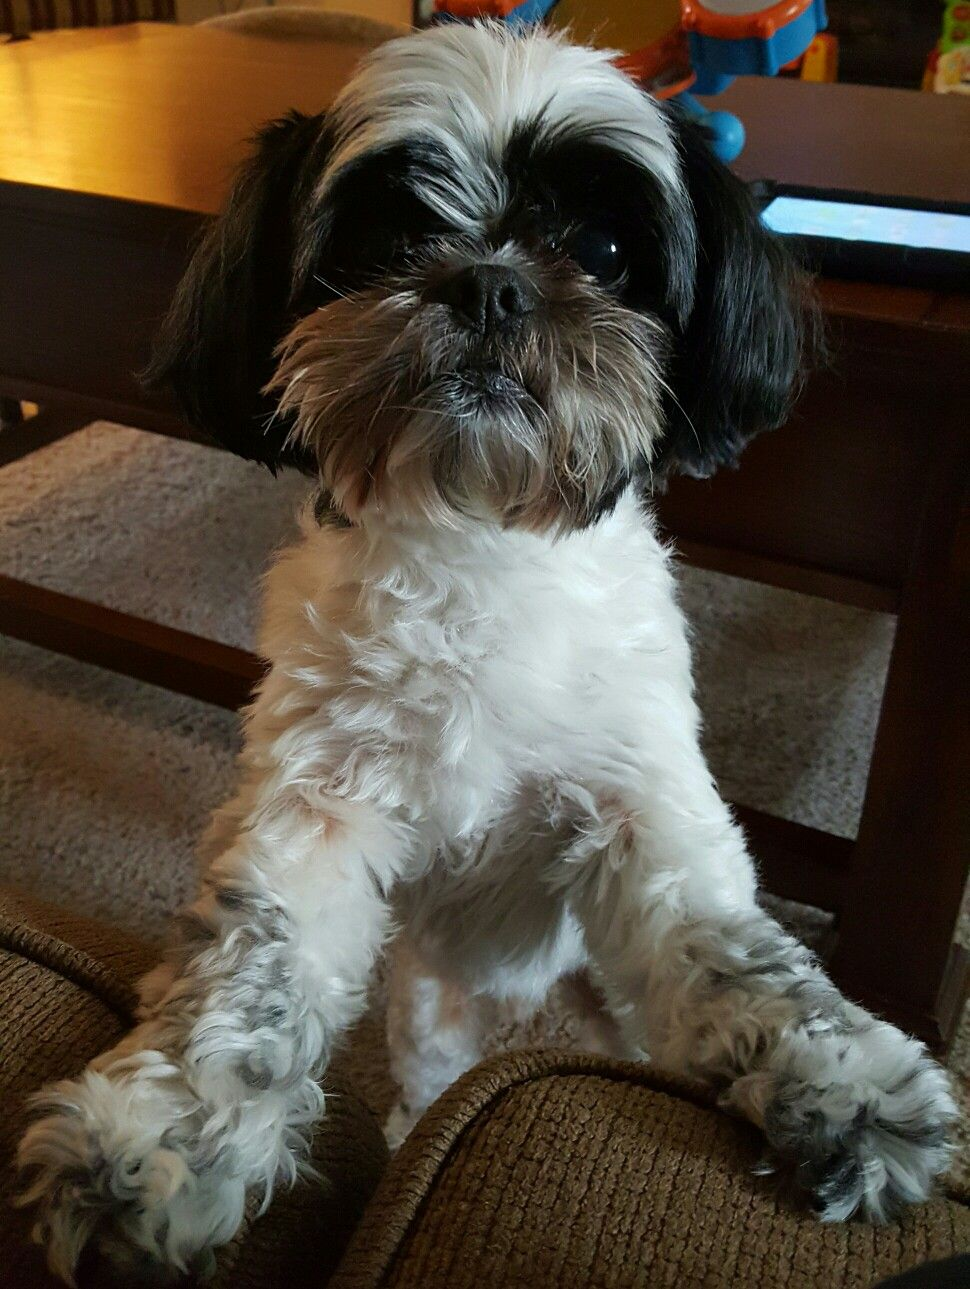 Pin by chrissy roepke on food shih tzu animals dogs